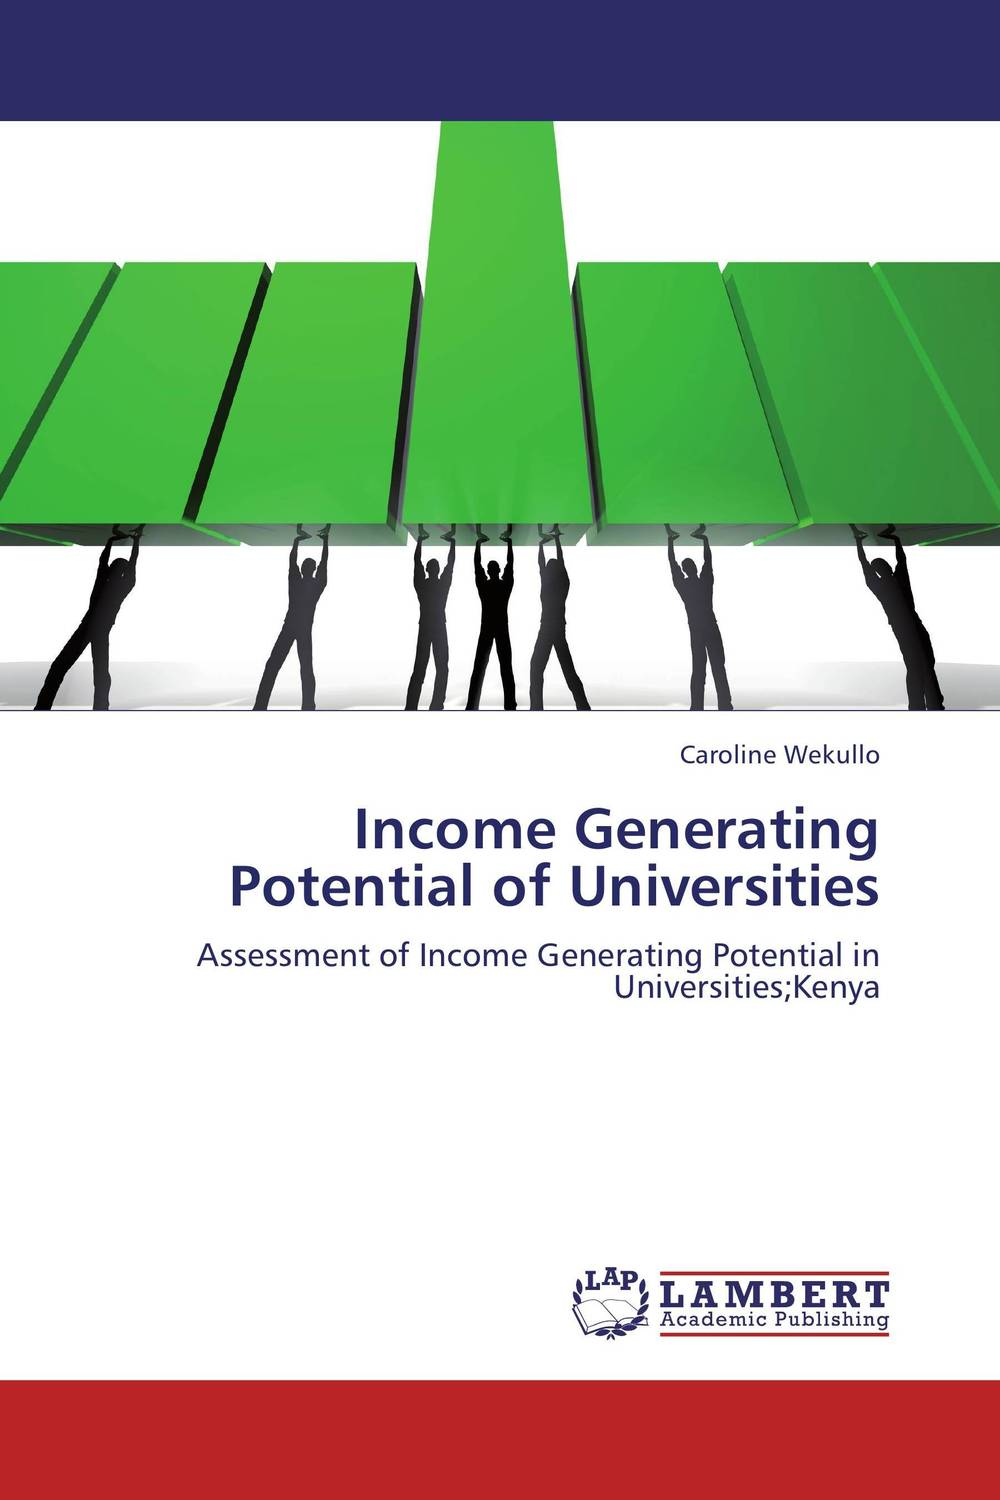 Income Generating Potential of Universities john m peckham iii a master guide to income property brokerage boost your income by selling commercial and income properties